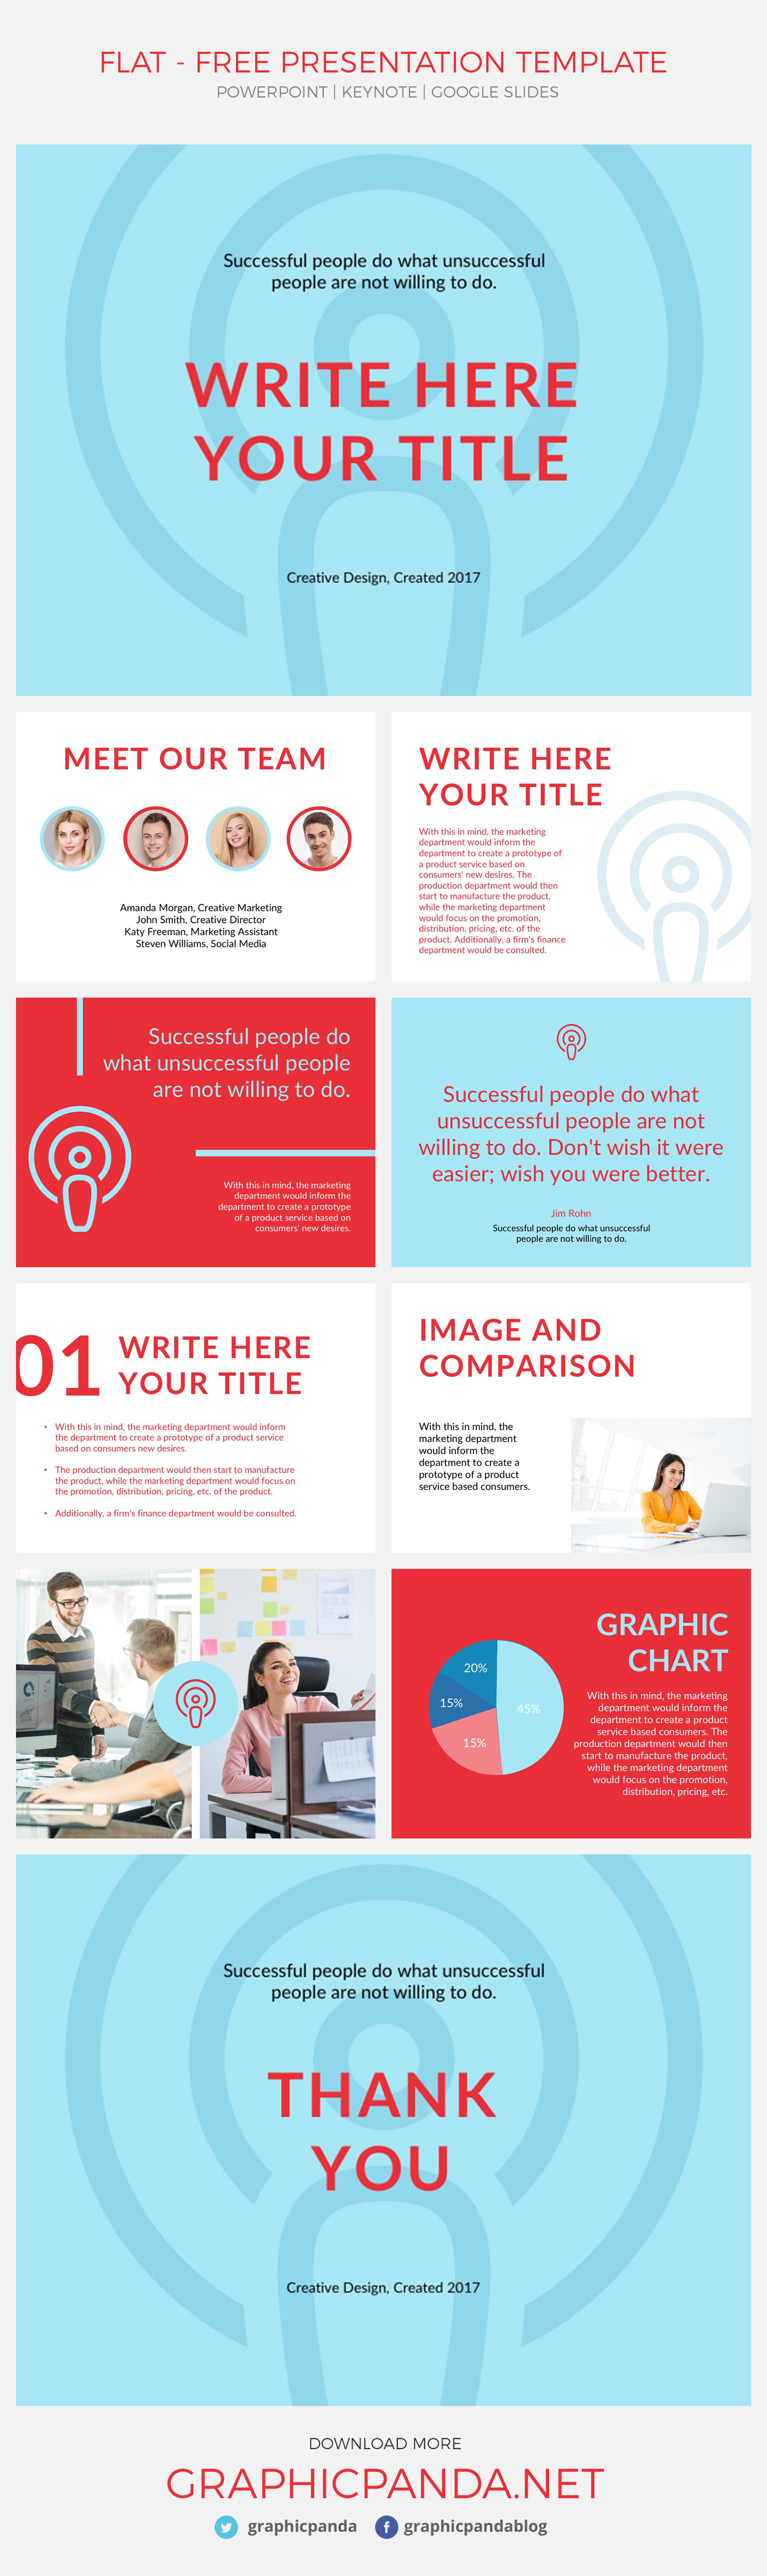 Present your ideas in a simple yet creative way with Flat Free Presentation Template. This creative presentation template allows you to add your information, replace pictures of your team and company, adjust graphics and present your ideas in a visual and outstanding way. It's really simple to use and it also comes packed with dozens of vector icons as a bonus to help you out on representing the different products or departments of your project. No matter the industry you are on you will always find this template useful.